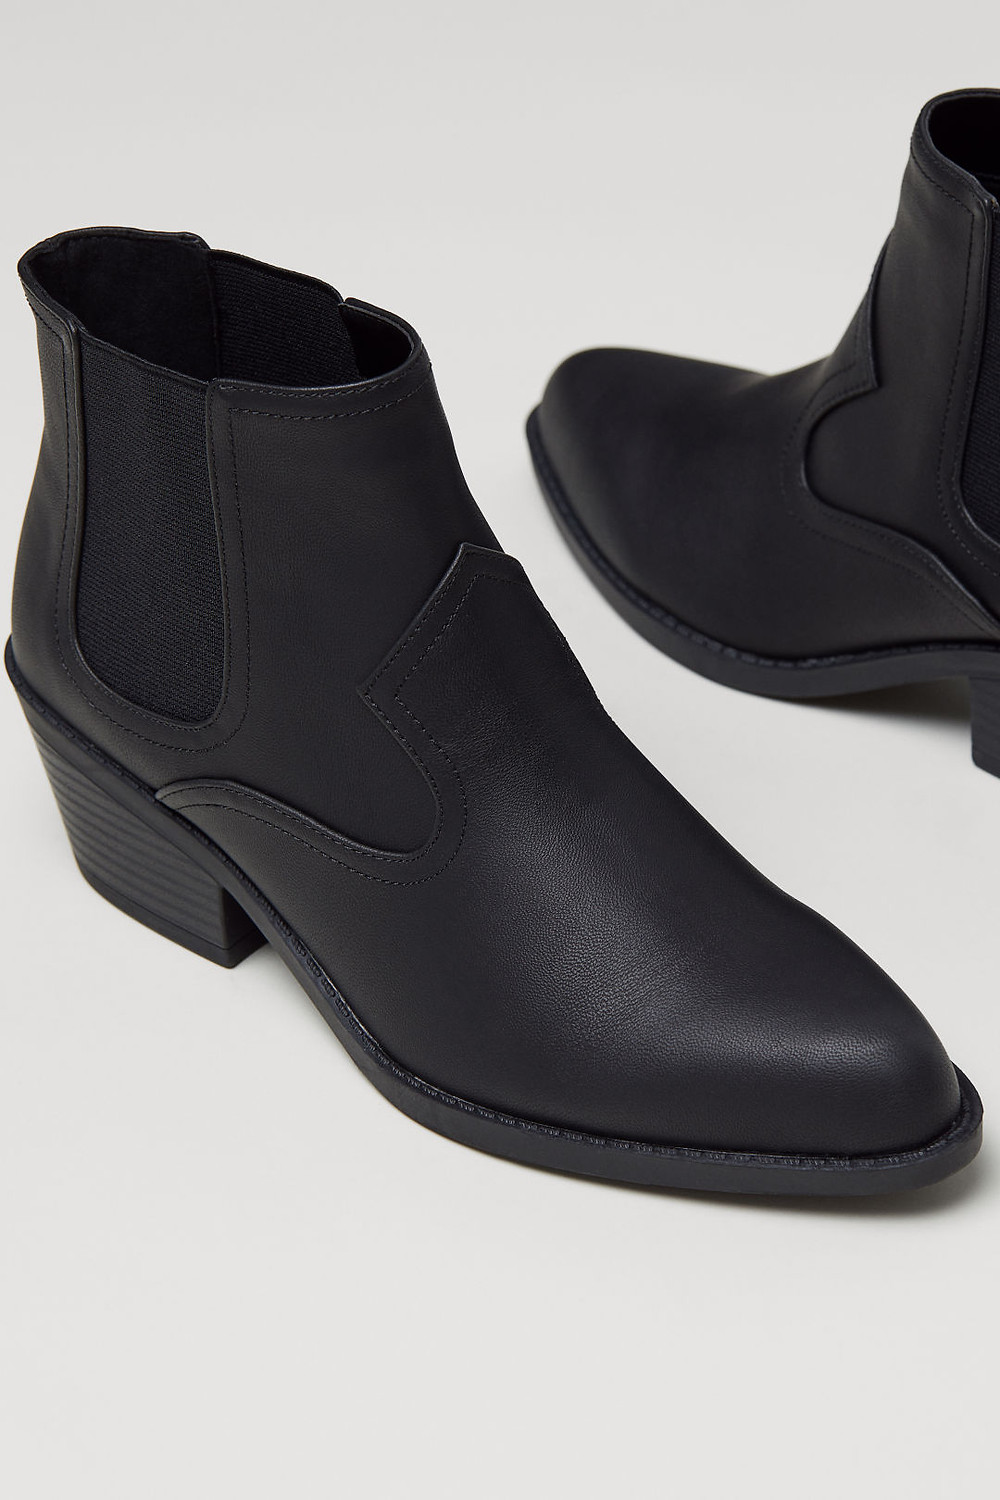 H&M Pointed Chelsea Boots $34.99